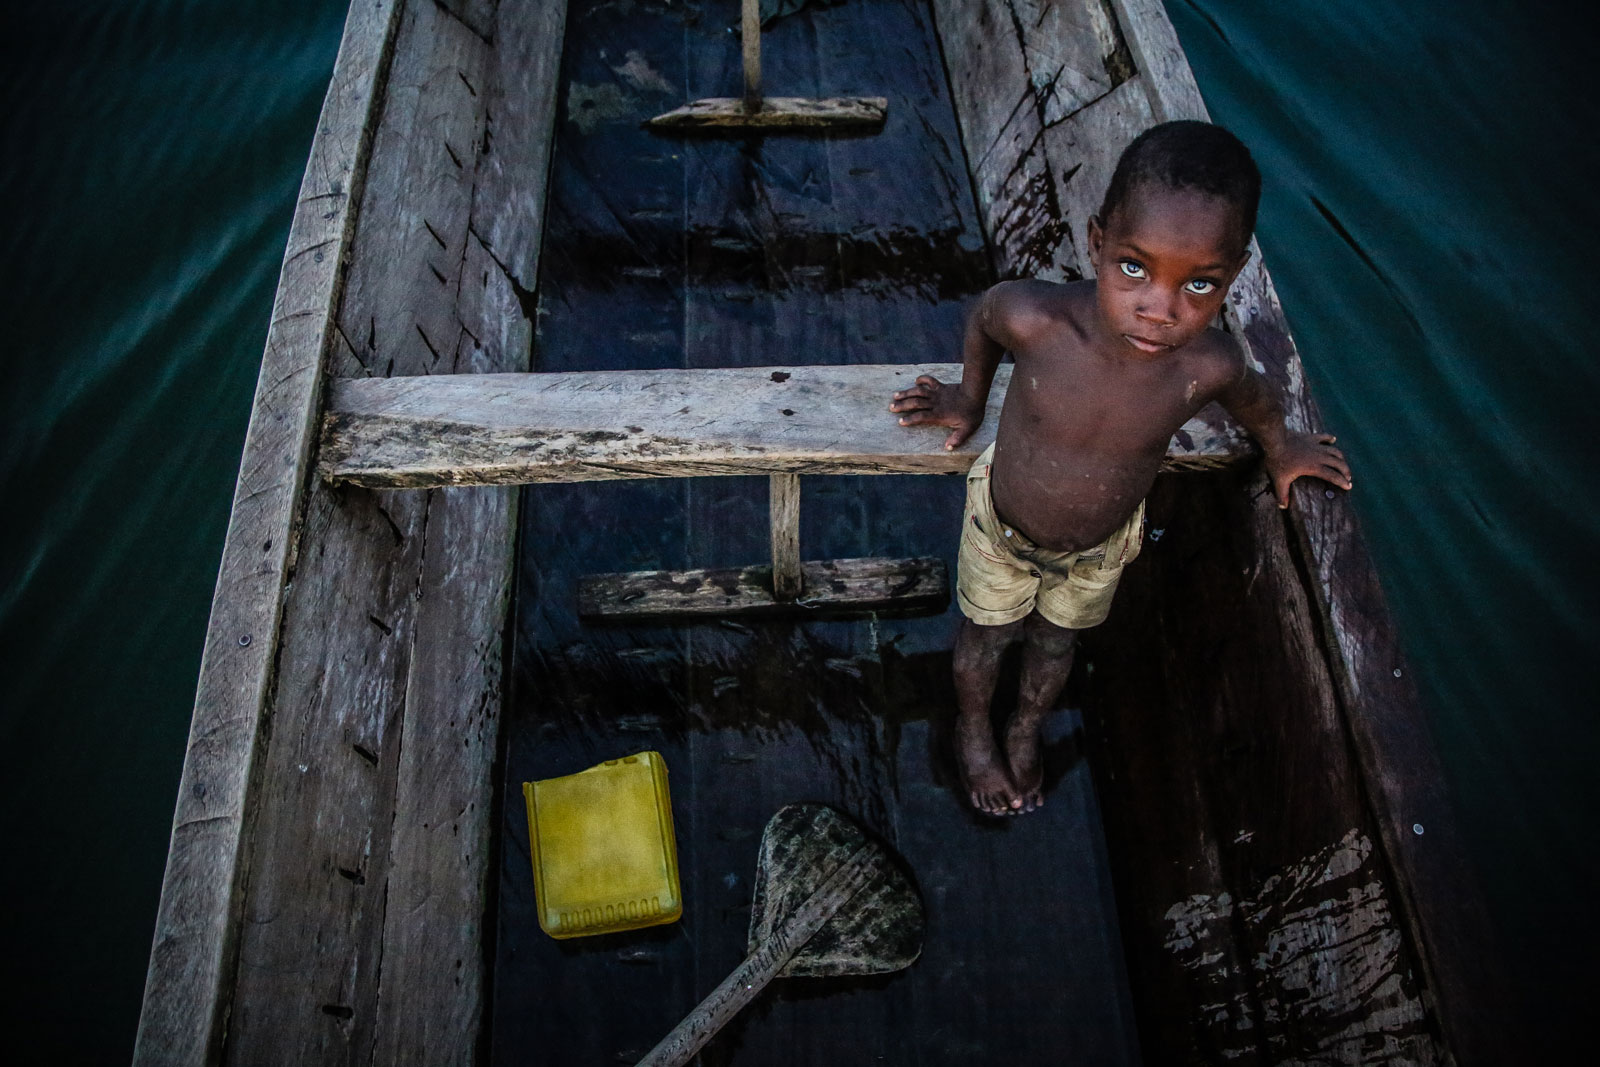 15 Powerful Photos that Capture Child Slavery #4